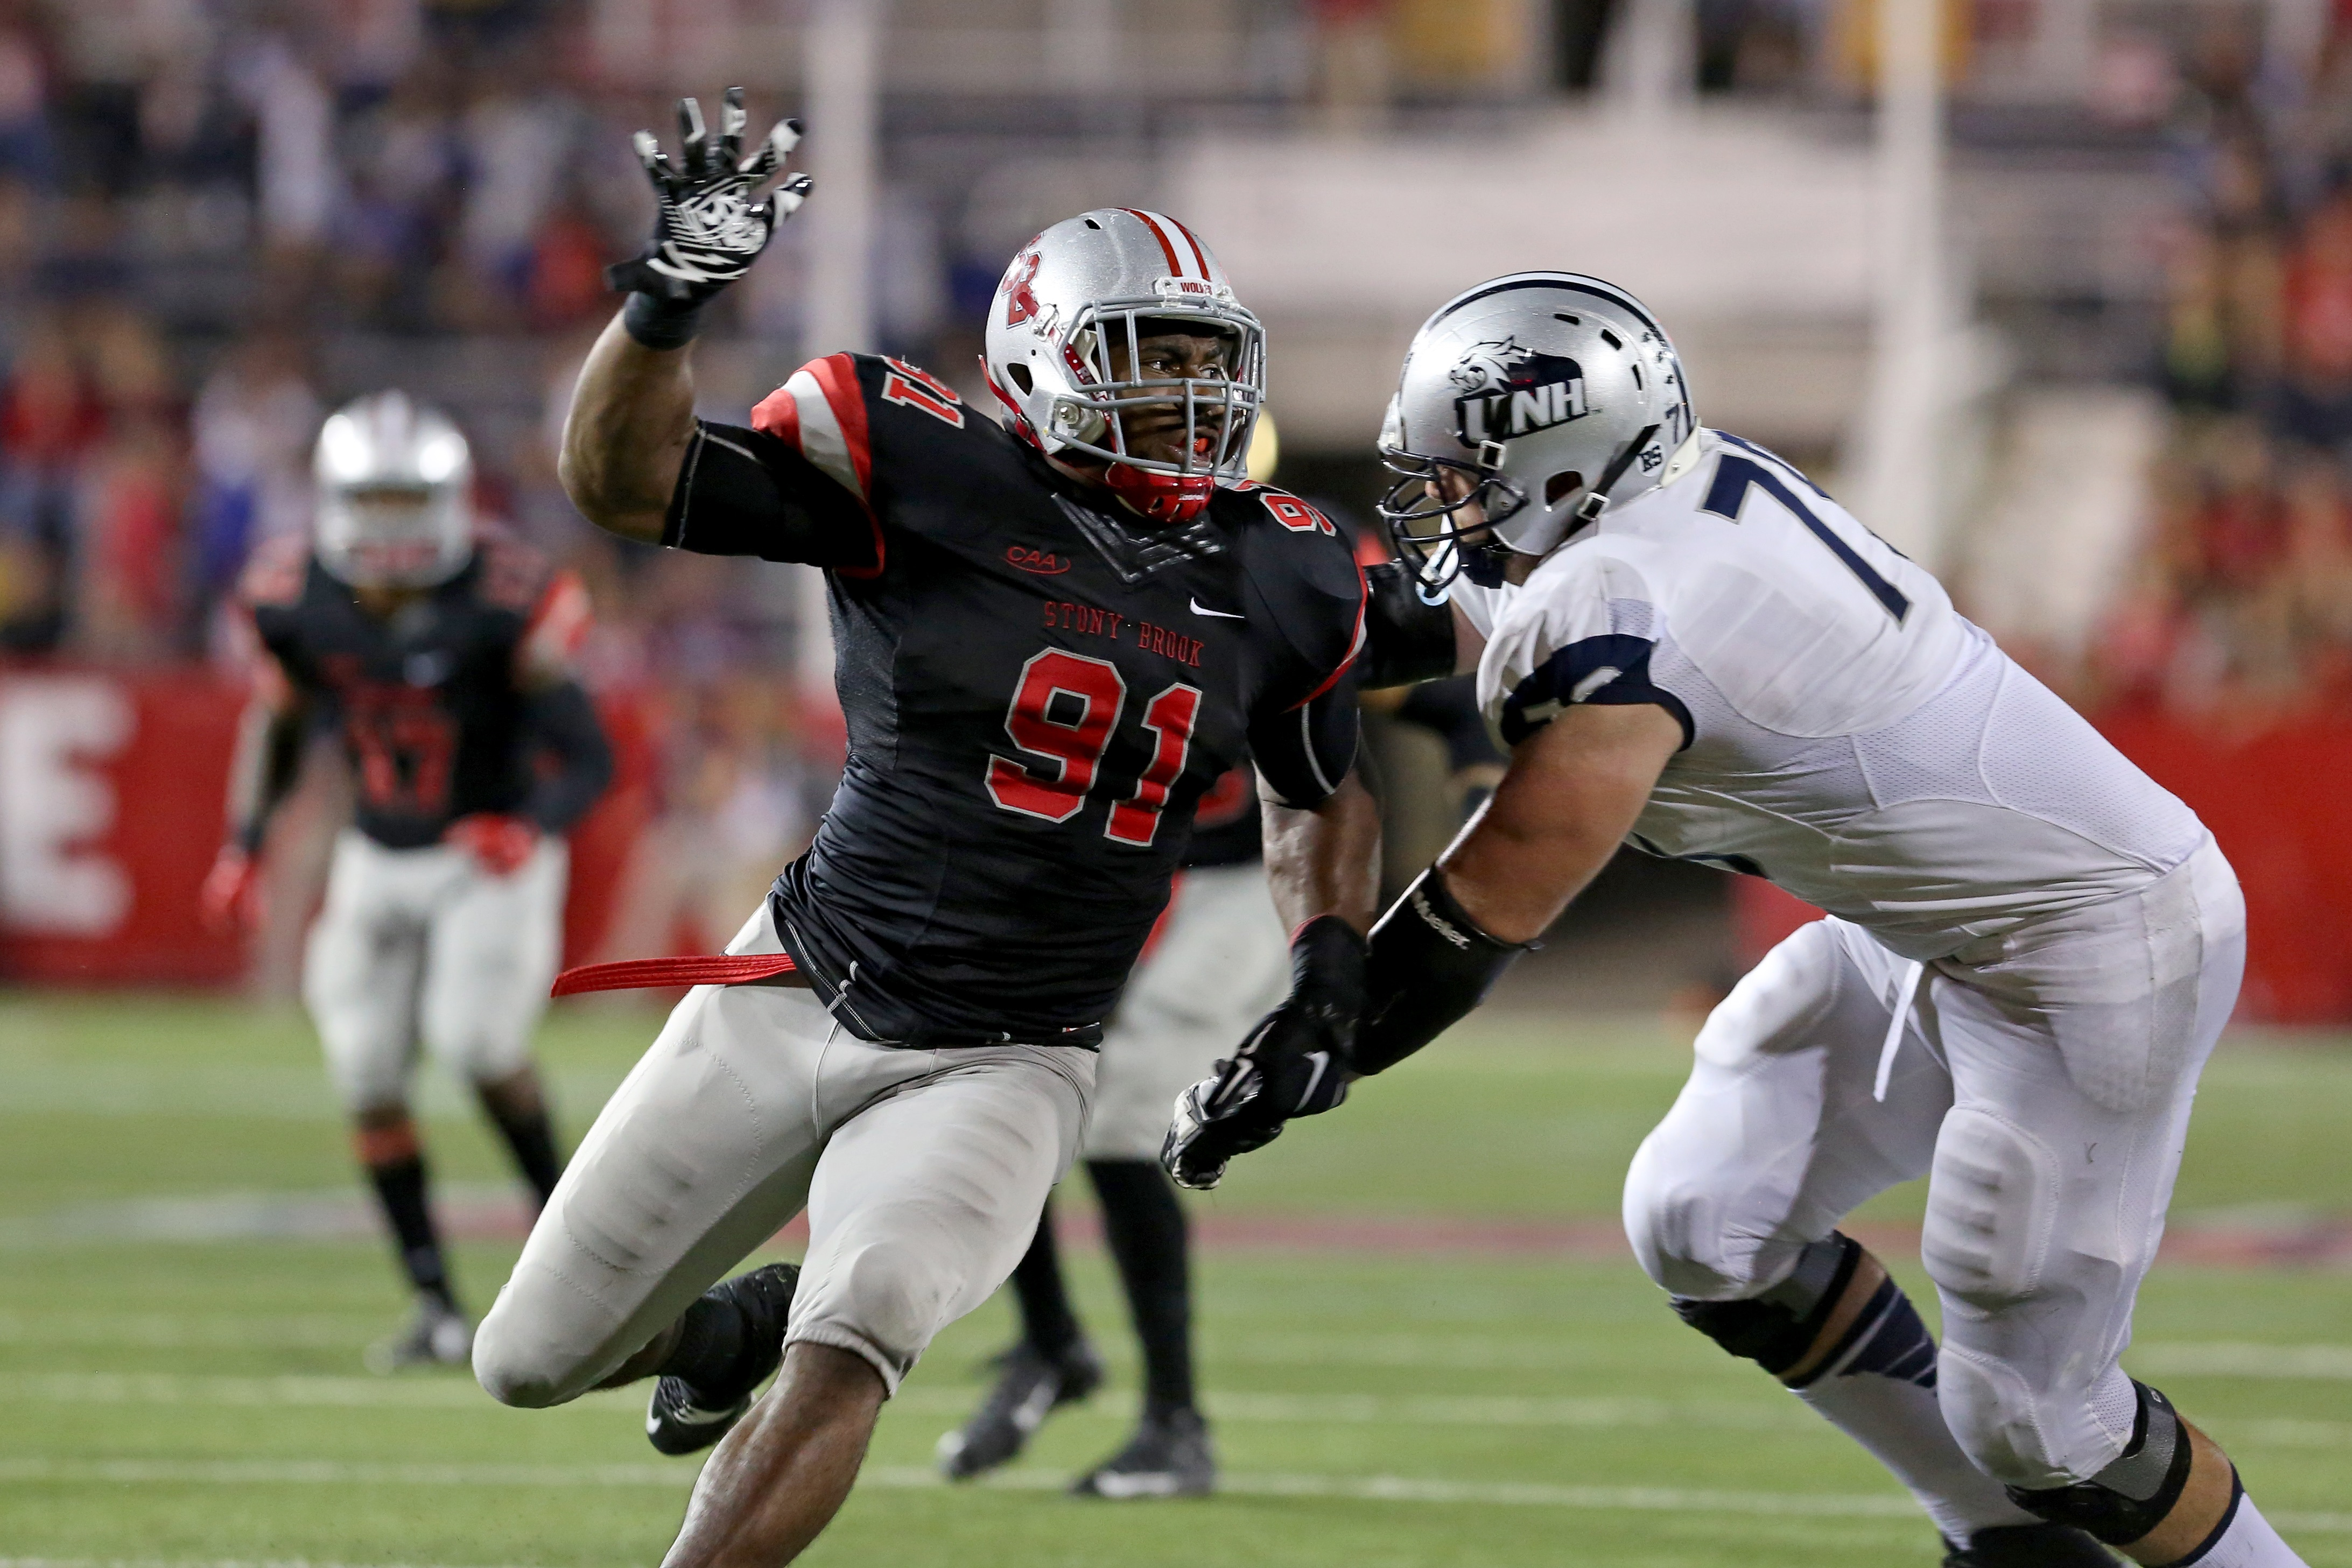 Stony Brook Seawolves Victor Ochi #91 in action against the New Hampshire Wildcats during a college football game on Saturday, September 19, 2015 in Stony Brook, NY.  (AP Photo/Gregory Payan)